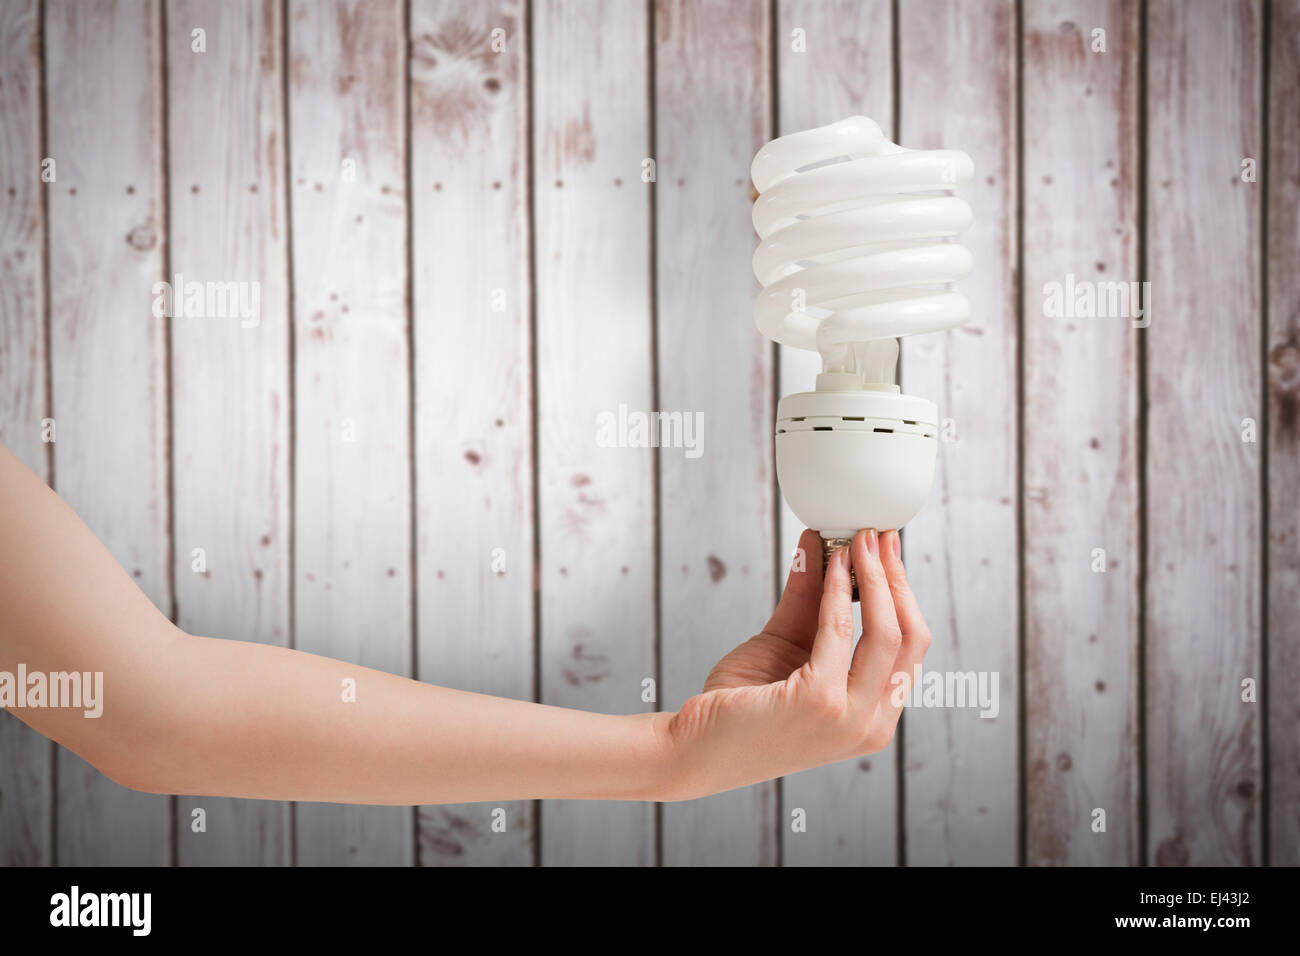 Composite image of hand holding energy efficient light bulb - Stock Image